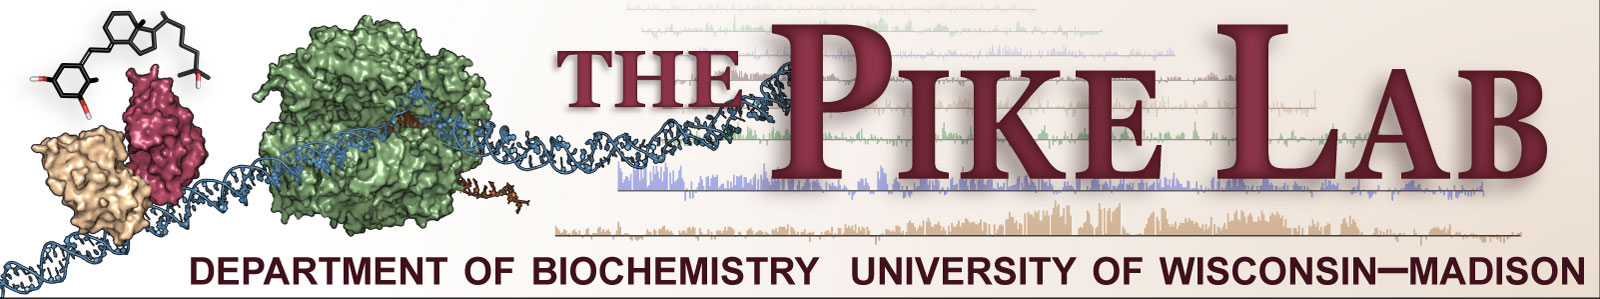 Pike lab demo